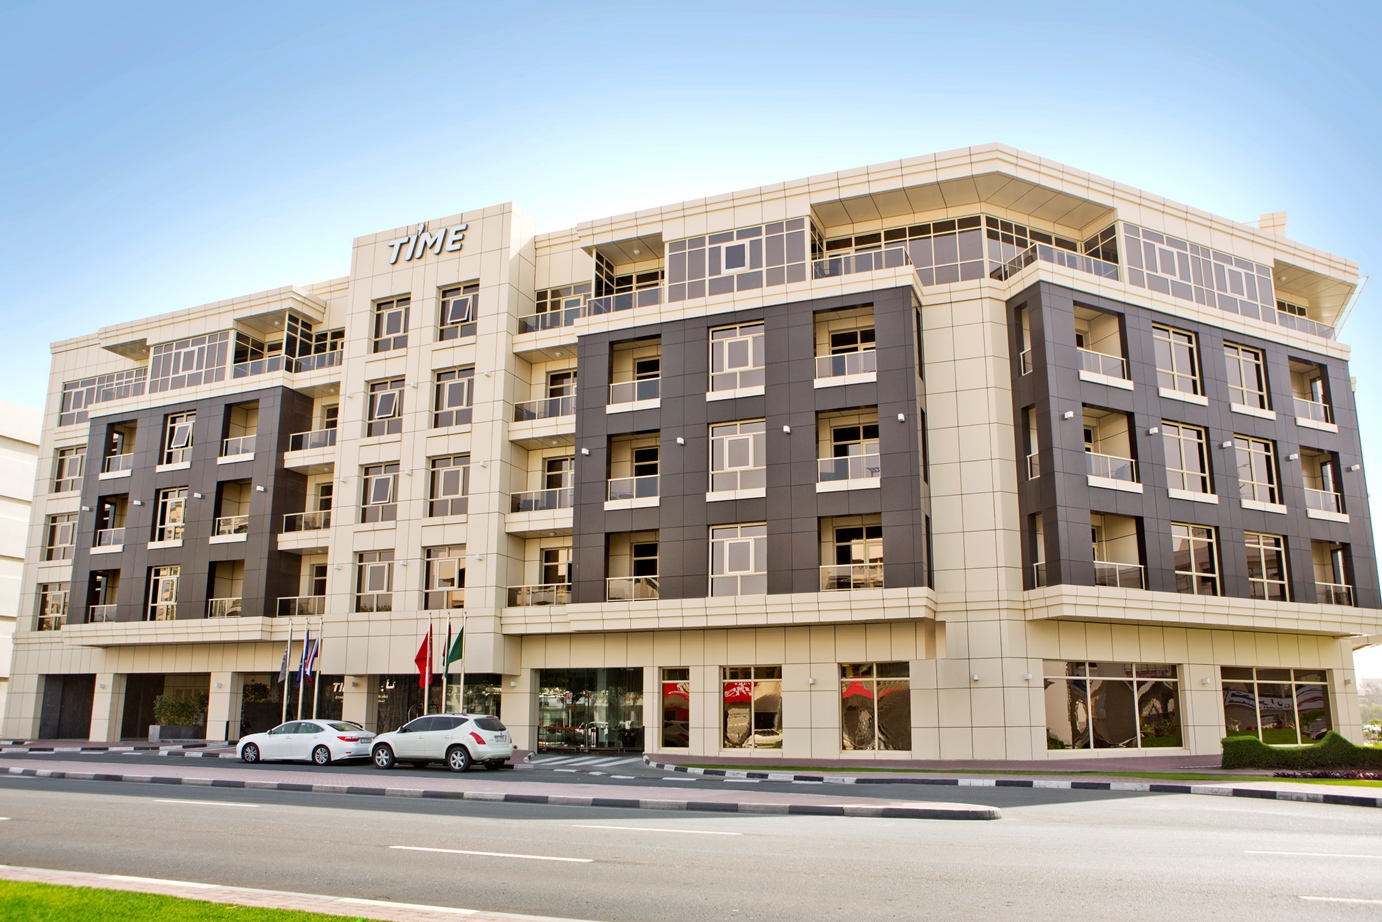 Time Hotels to unveil expansion plans at Arabian Travel Market